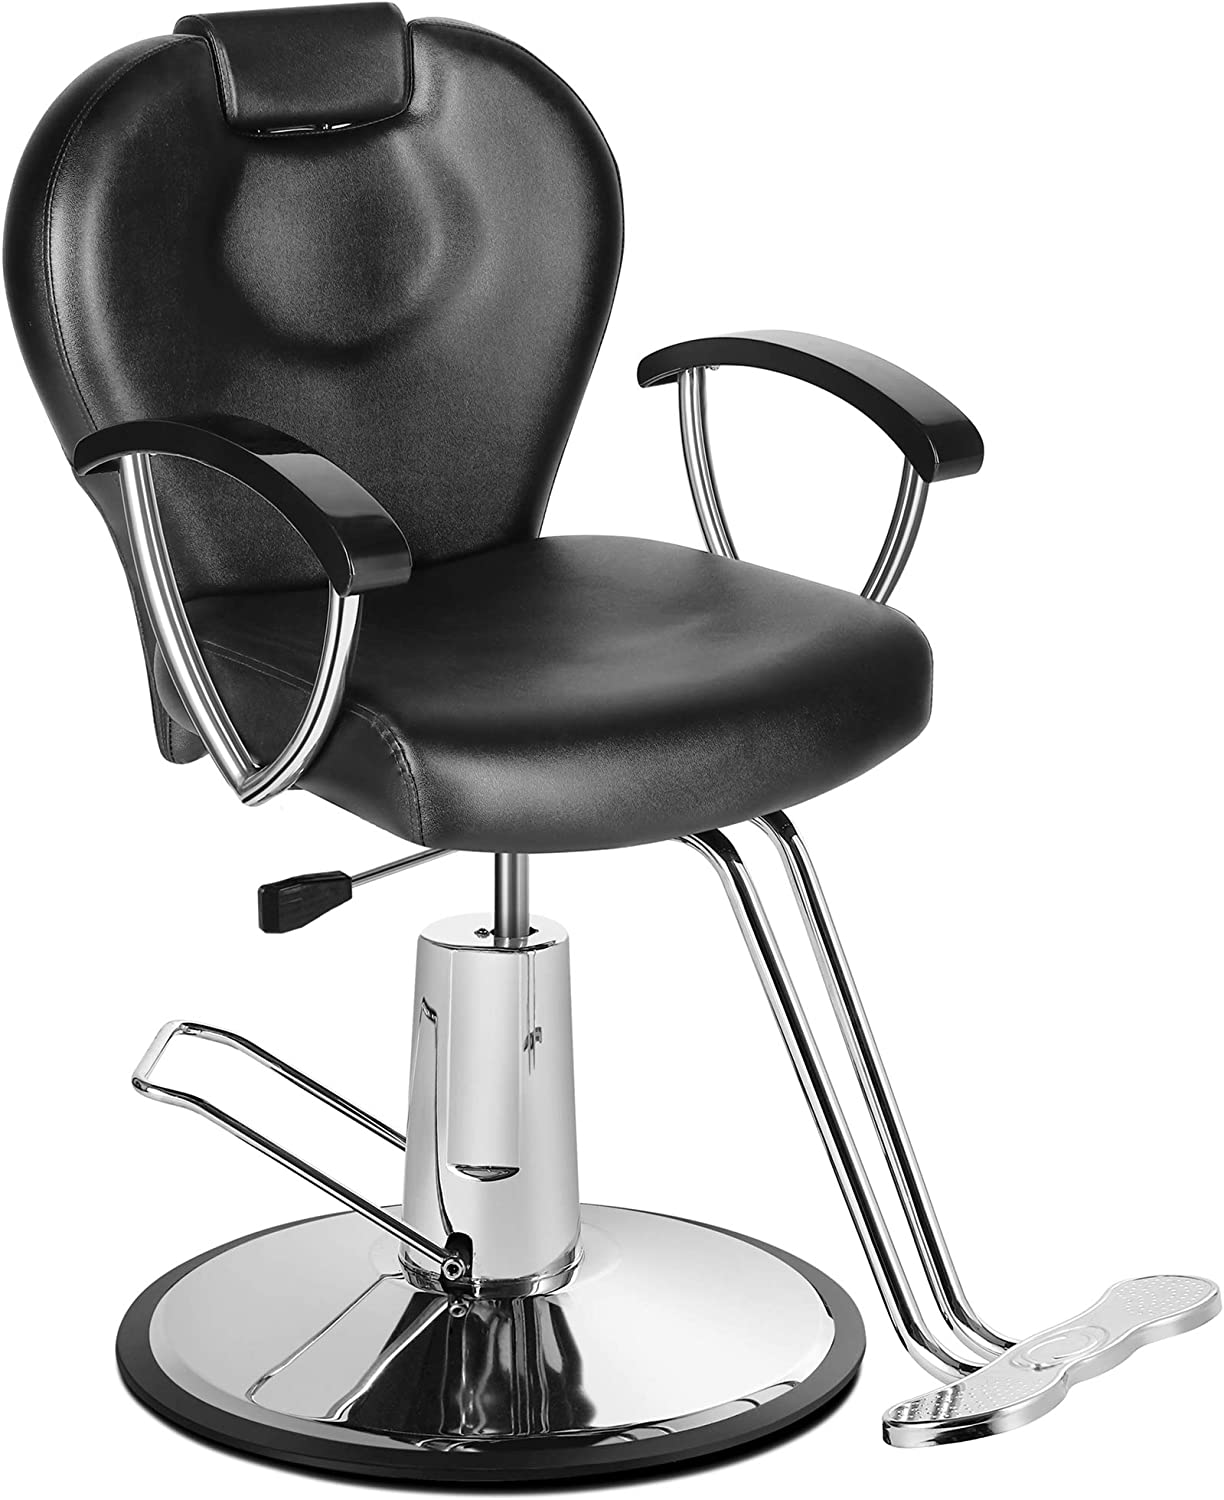 Eastmagic Hydraulic Barber Chair Reclining Salon Chair review